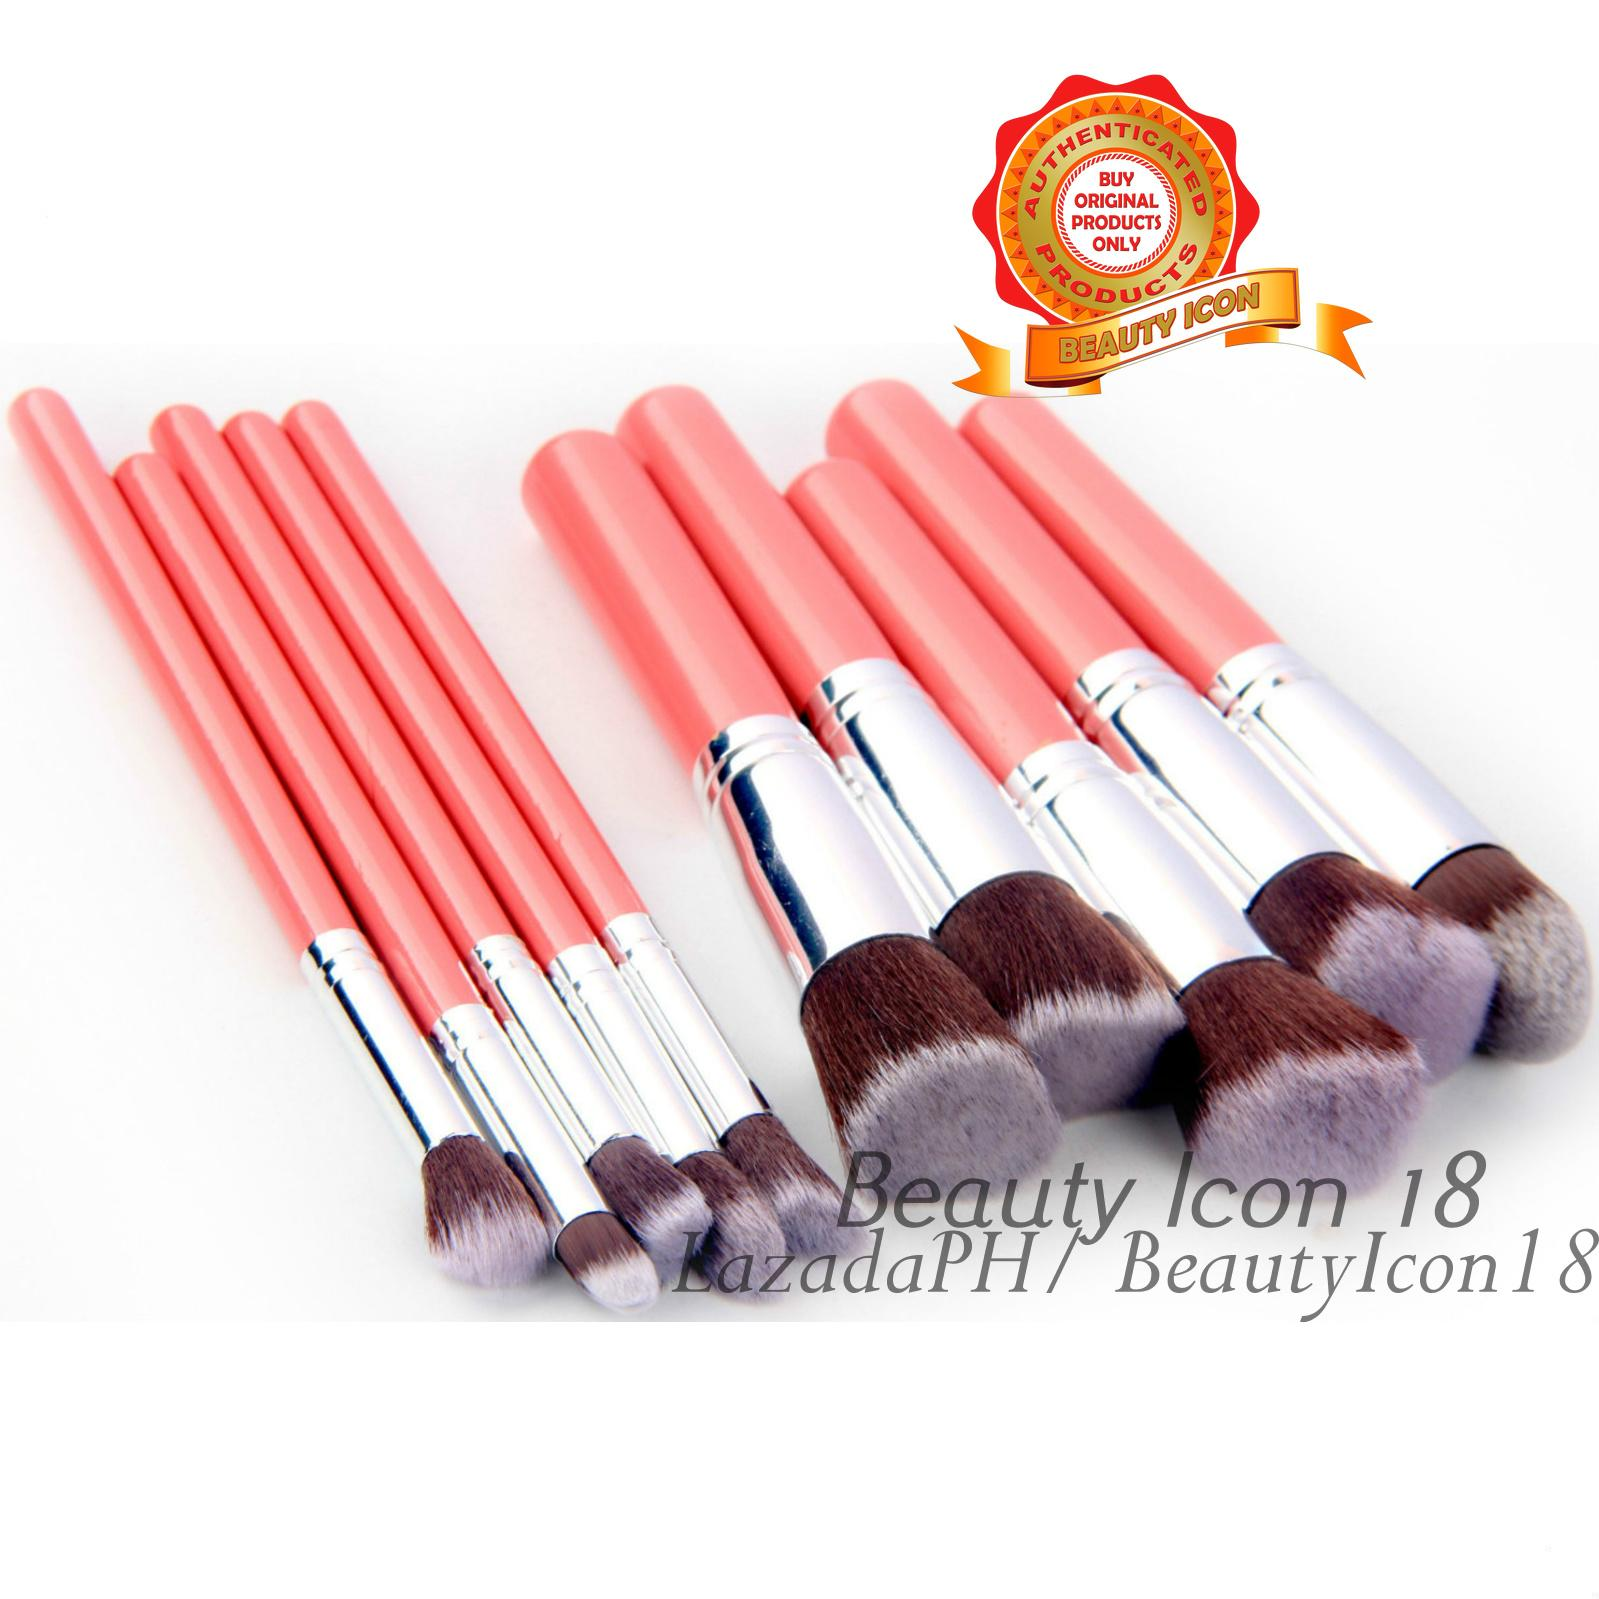 Makeup Brands Beauty On Sale Prices Set Reviews In Wardah Lip Palette Pinky Peach Kabuki 10 Pcs Professional Soft Make Up Brush Pink Silver